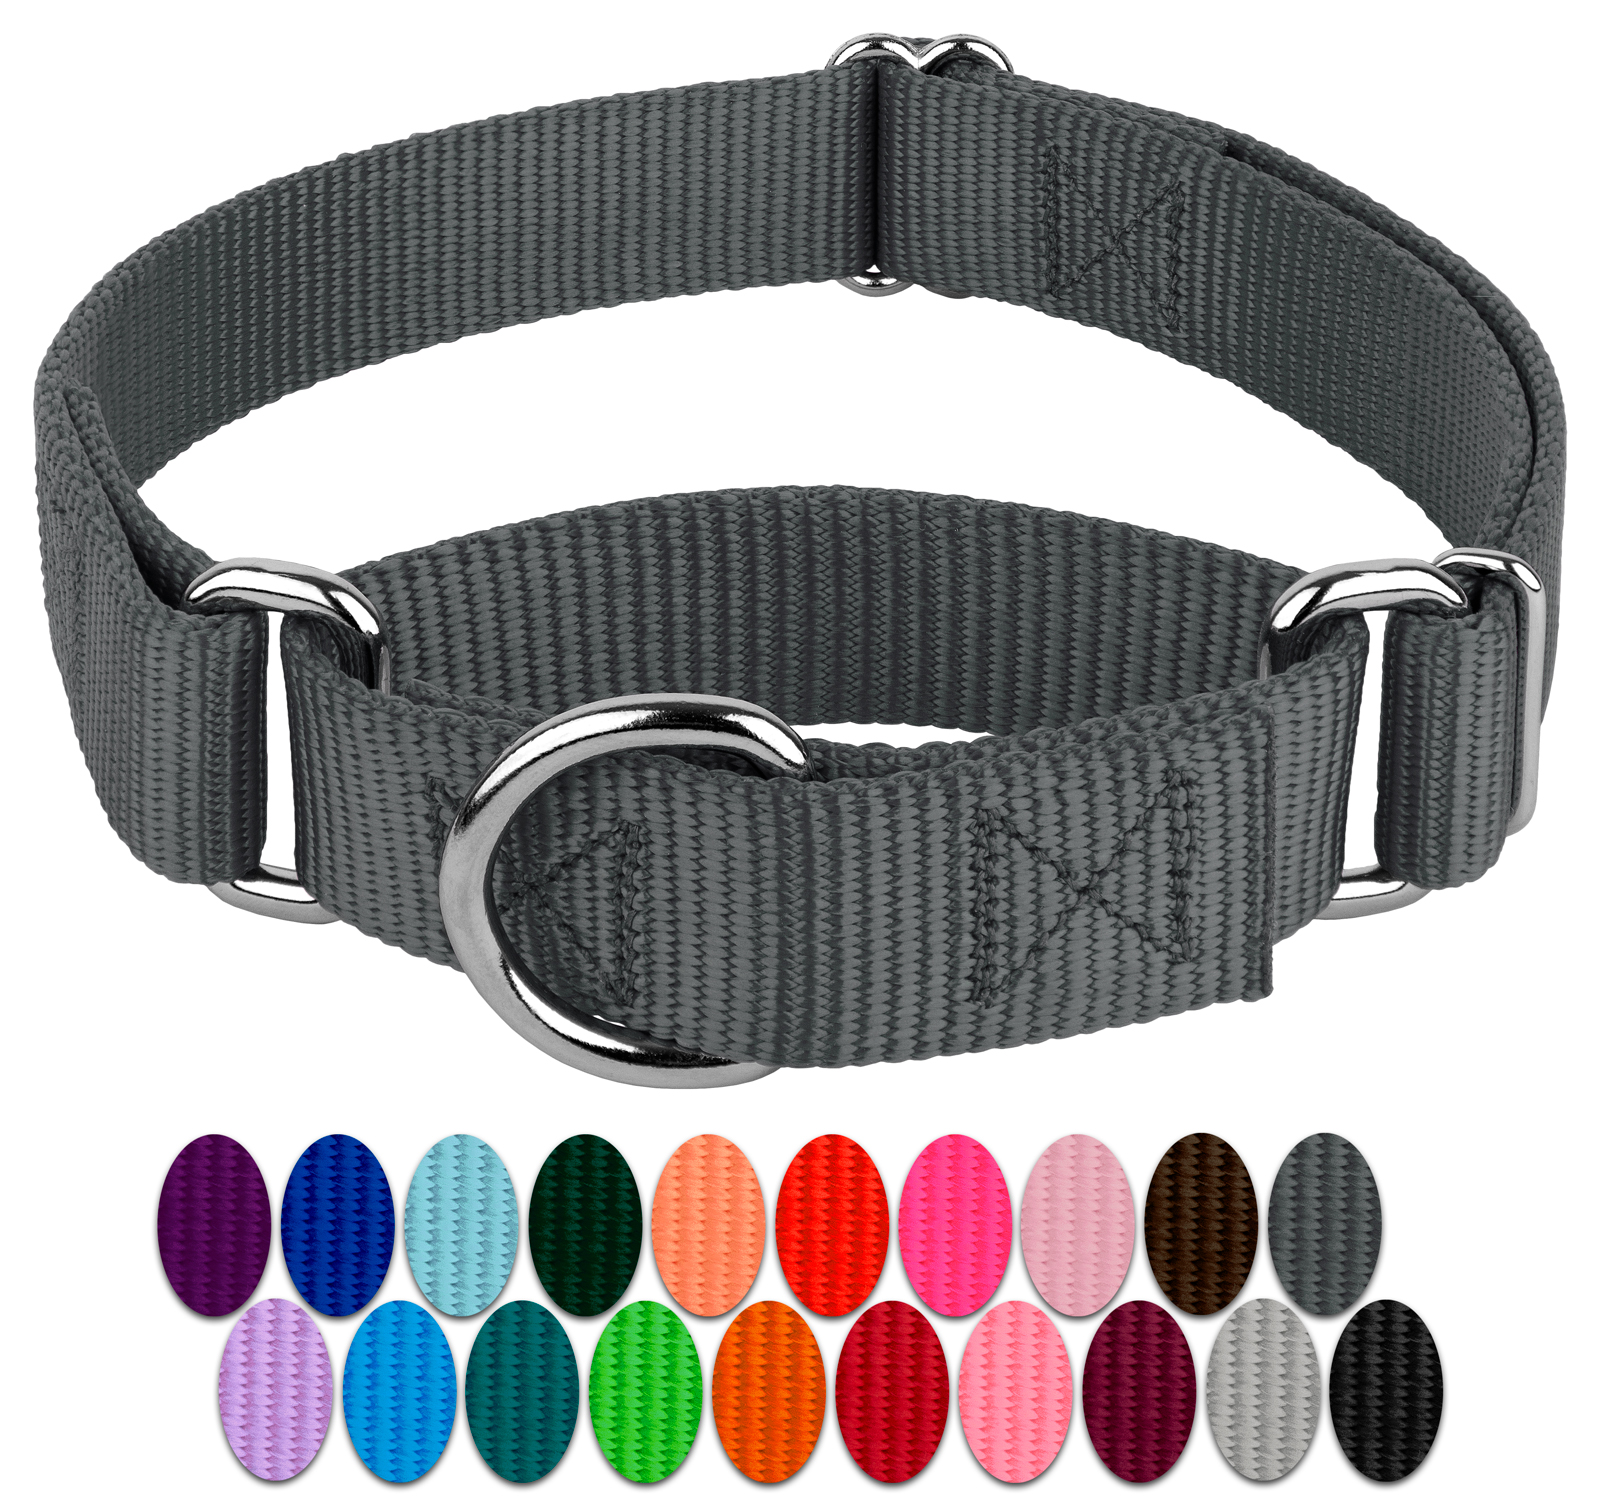 Country Brook Design | Martingale Heavyduty Nylon Dog Collar